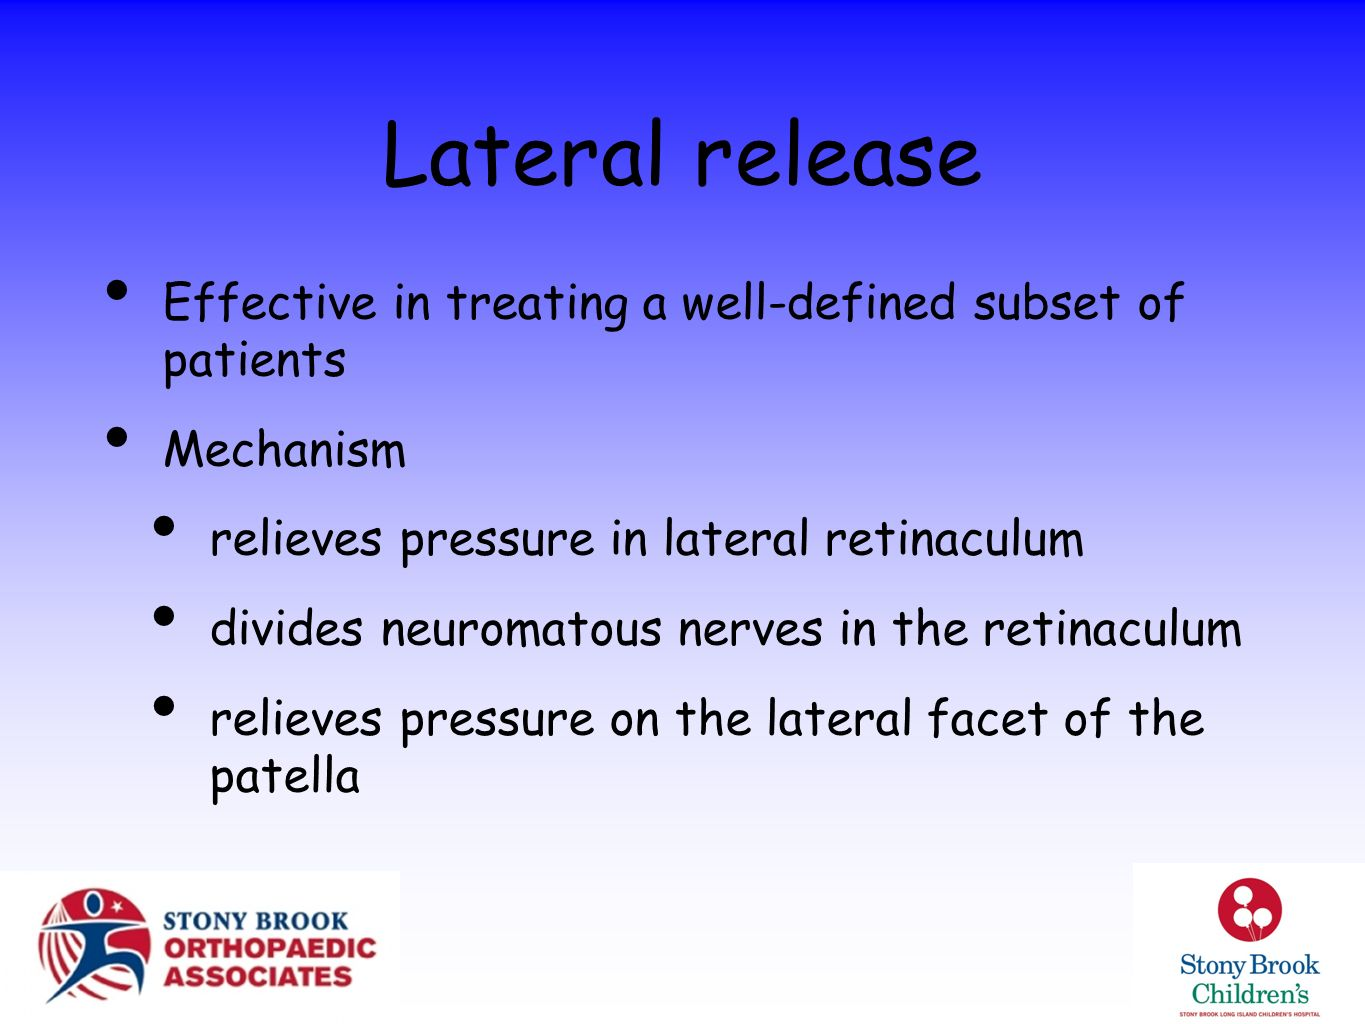 Lateral release Effective in treating a well-defined subset of patients Mechanism relieves pressure in lateral retinaculum divides neuromatous nerves